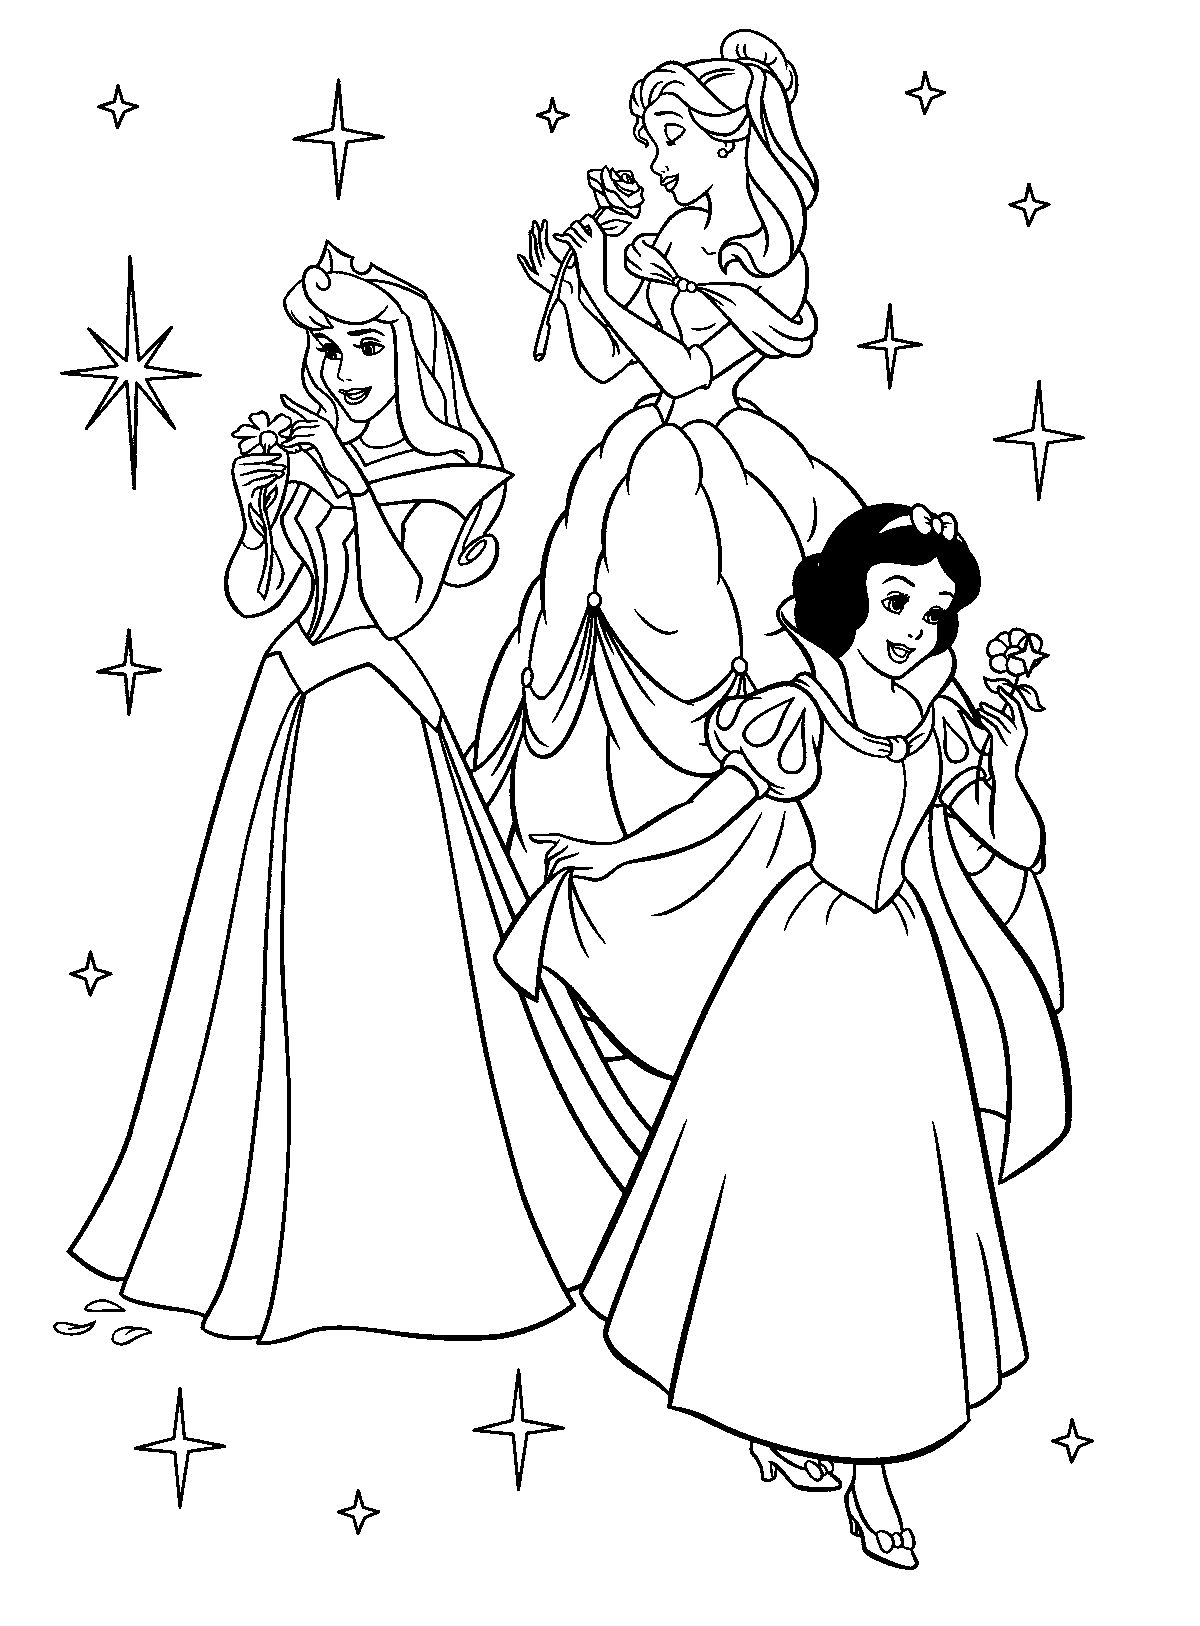 Free Printable Disney Princess Coloring Pages For Kids ... | coloring pages to print disney princess